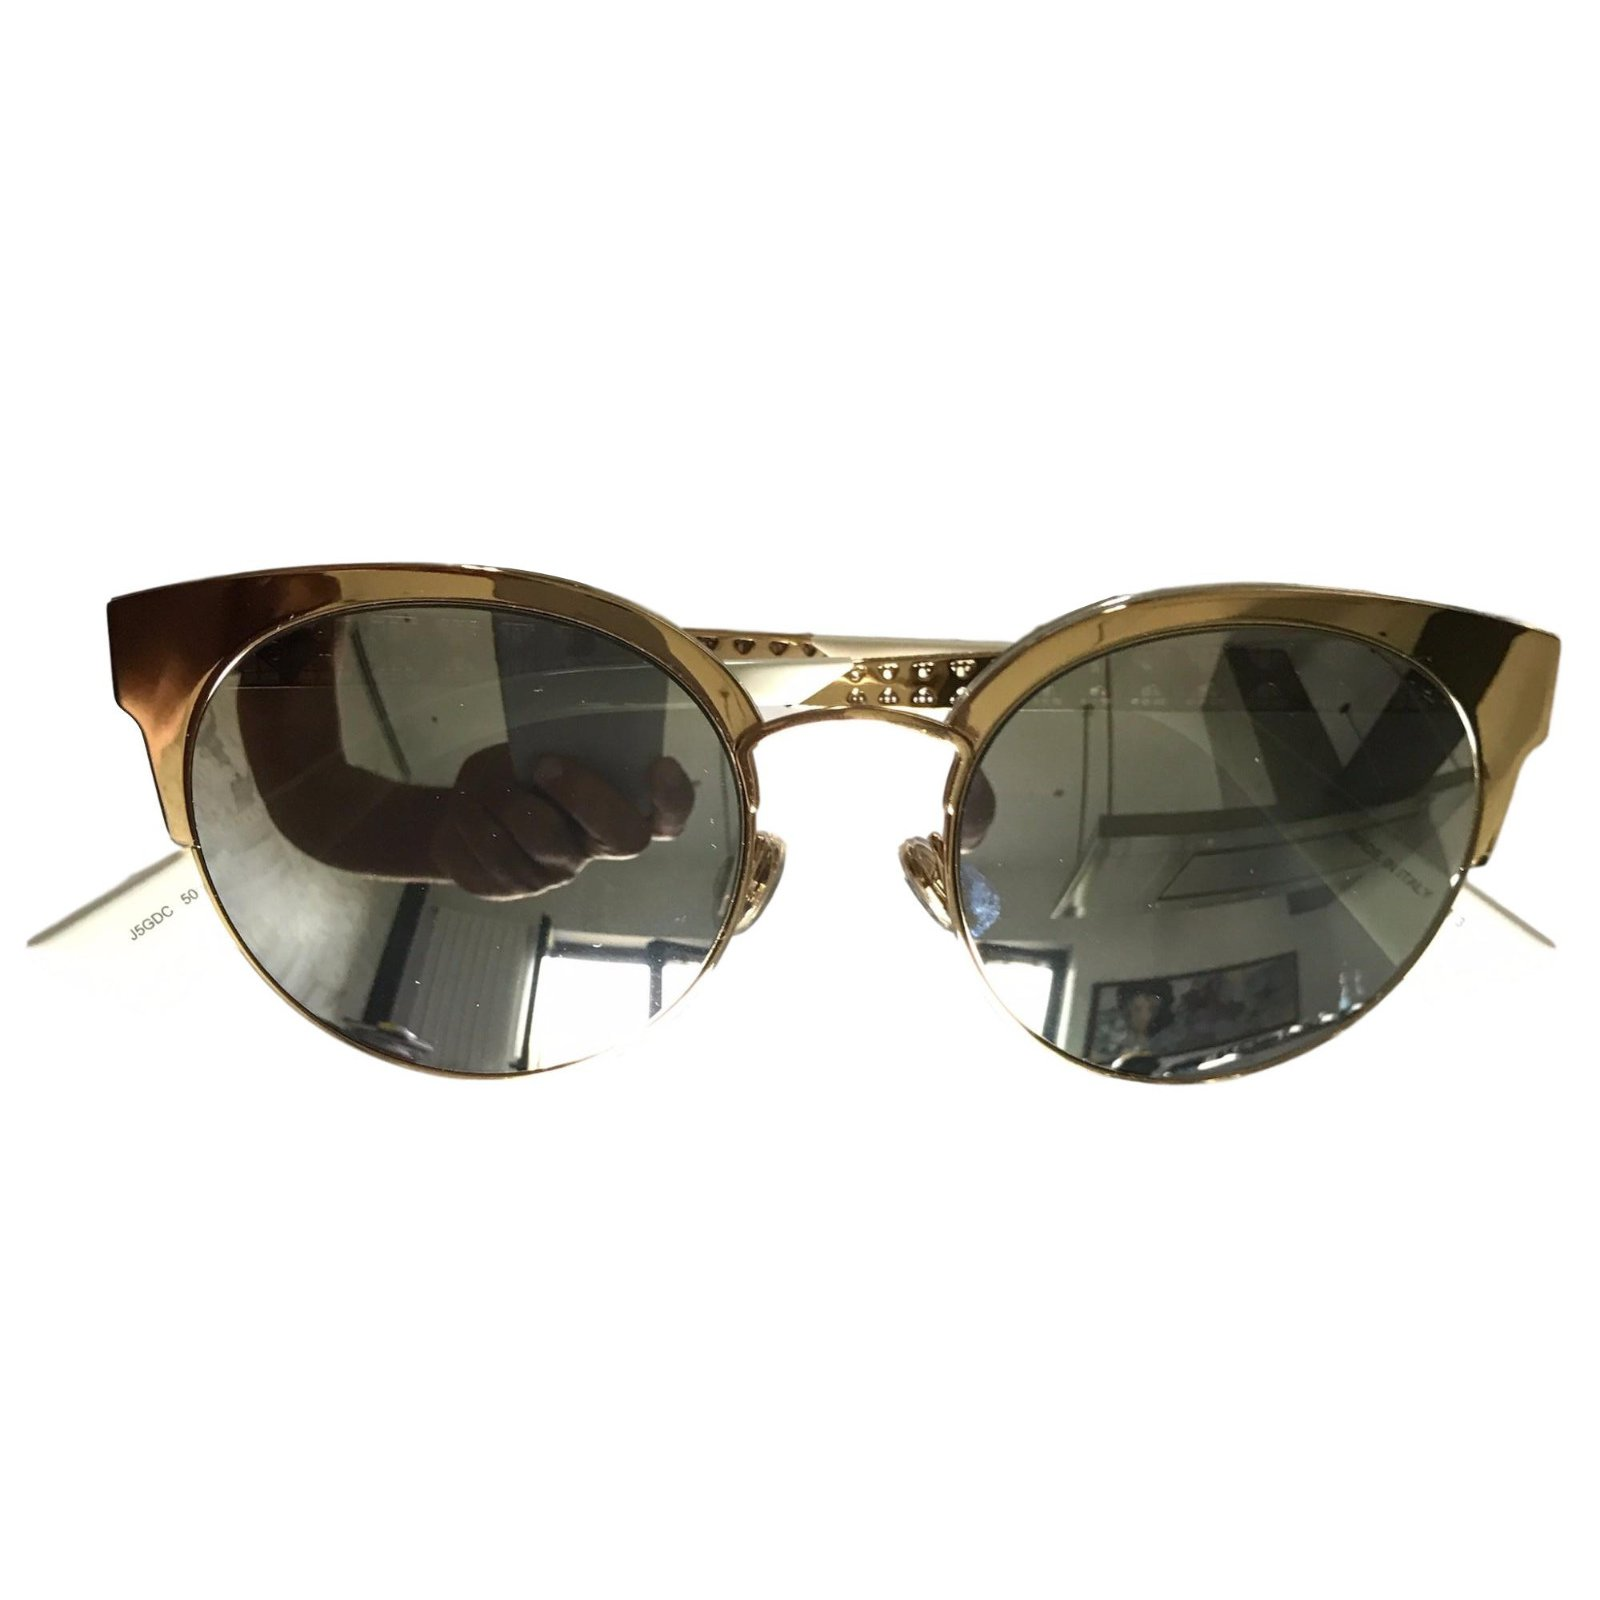 9c6dfd9b32 Christian Dior Dior diorama mini Sunglasses Metal Golden ref.45520 ...